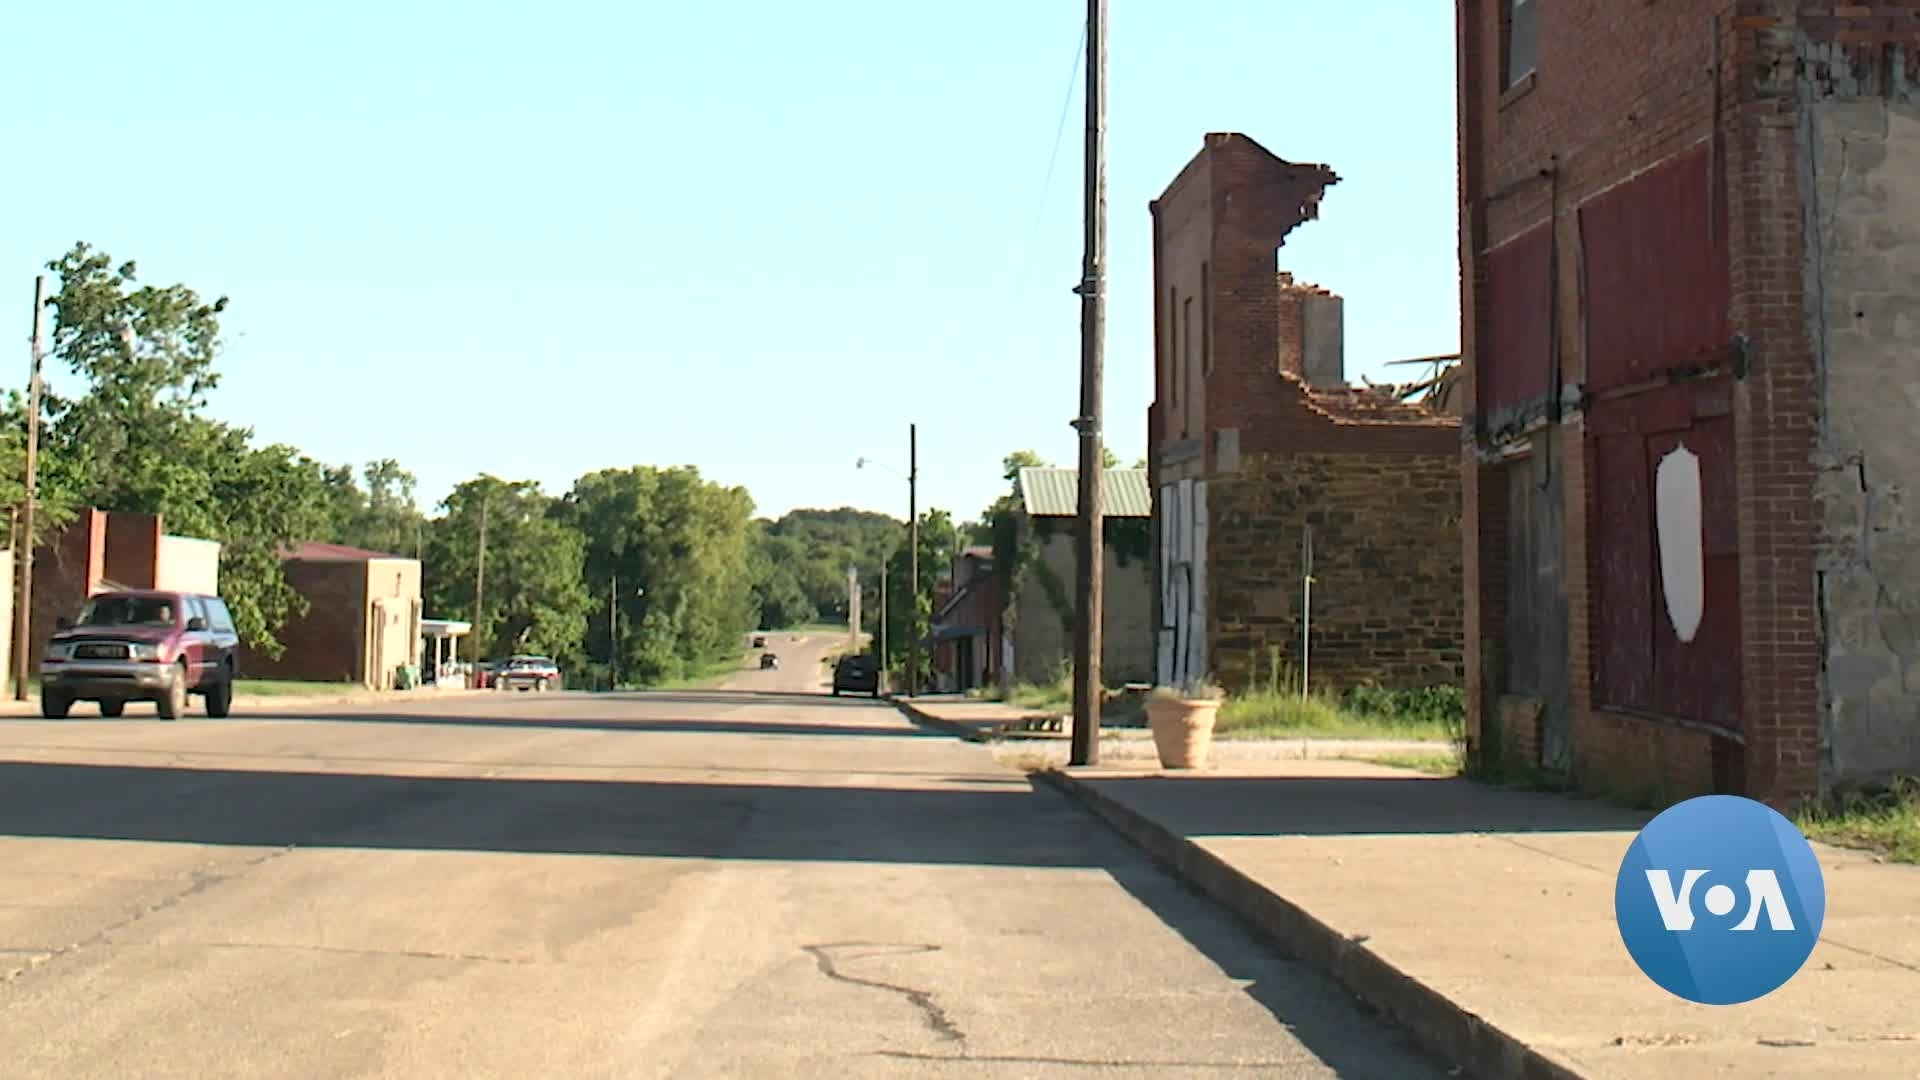 Founded by Former Slaves, Oklahoma's All-Black Towns Struggle to Survive